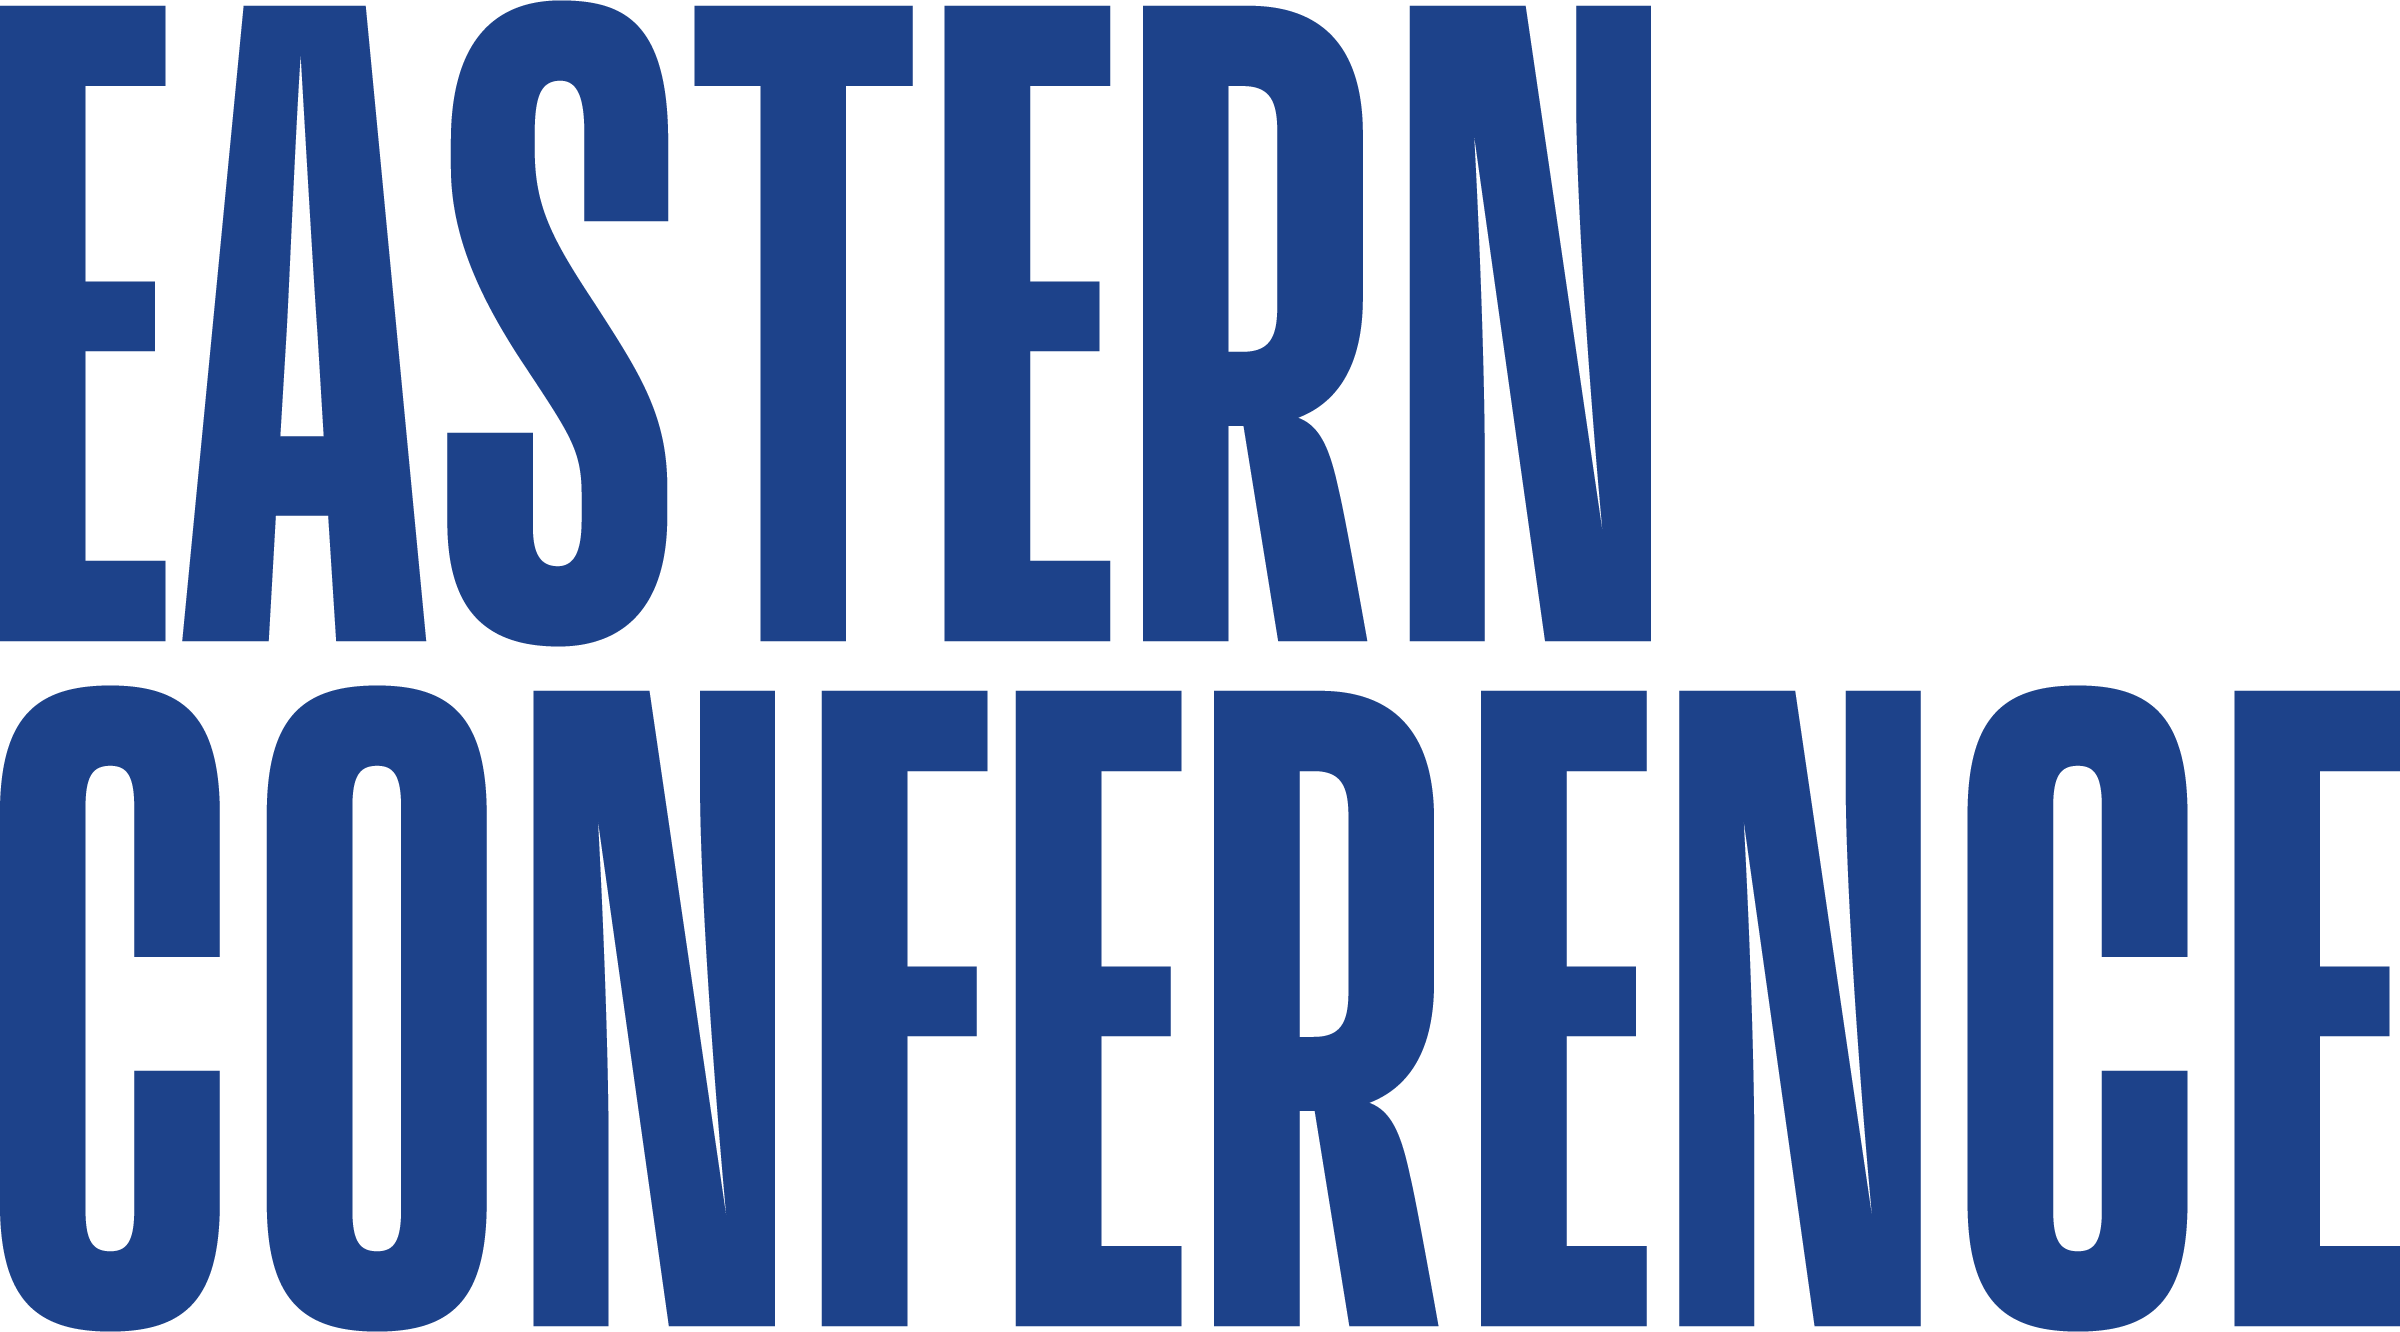 Nba logo png. File eastern conference wikimedia